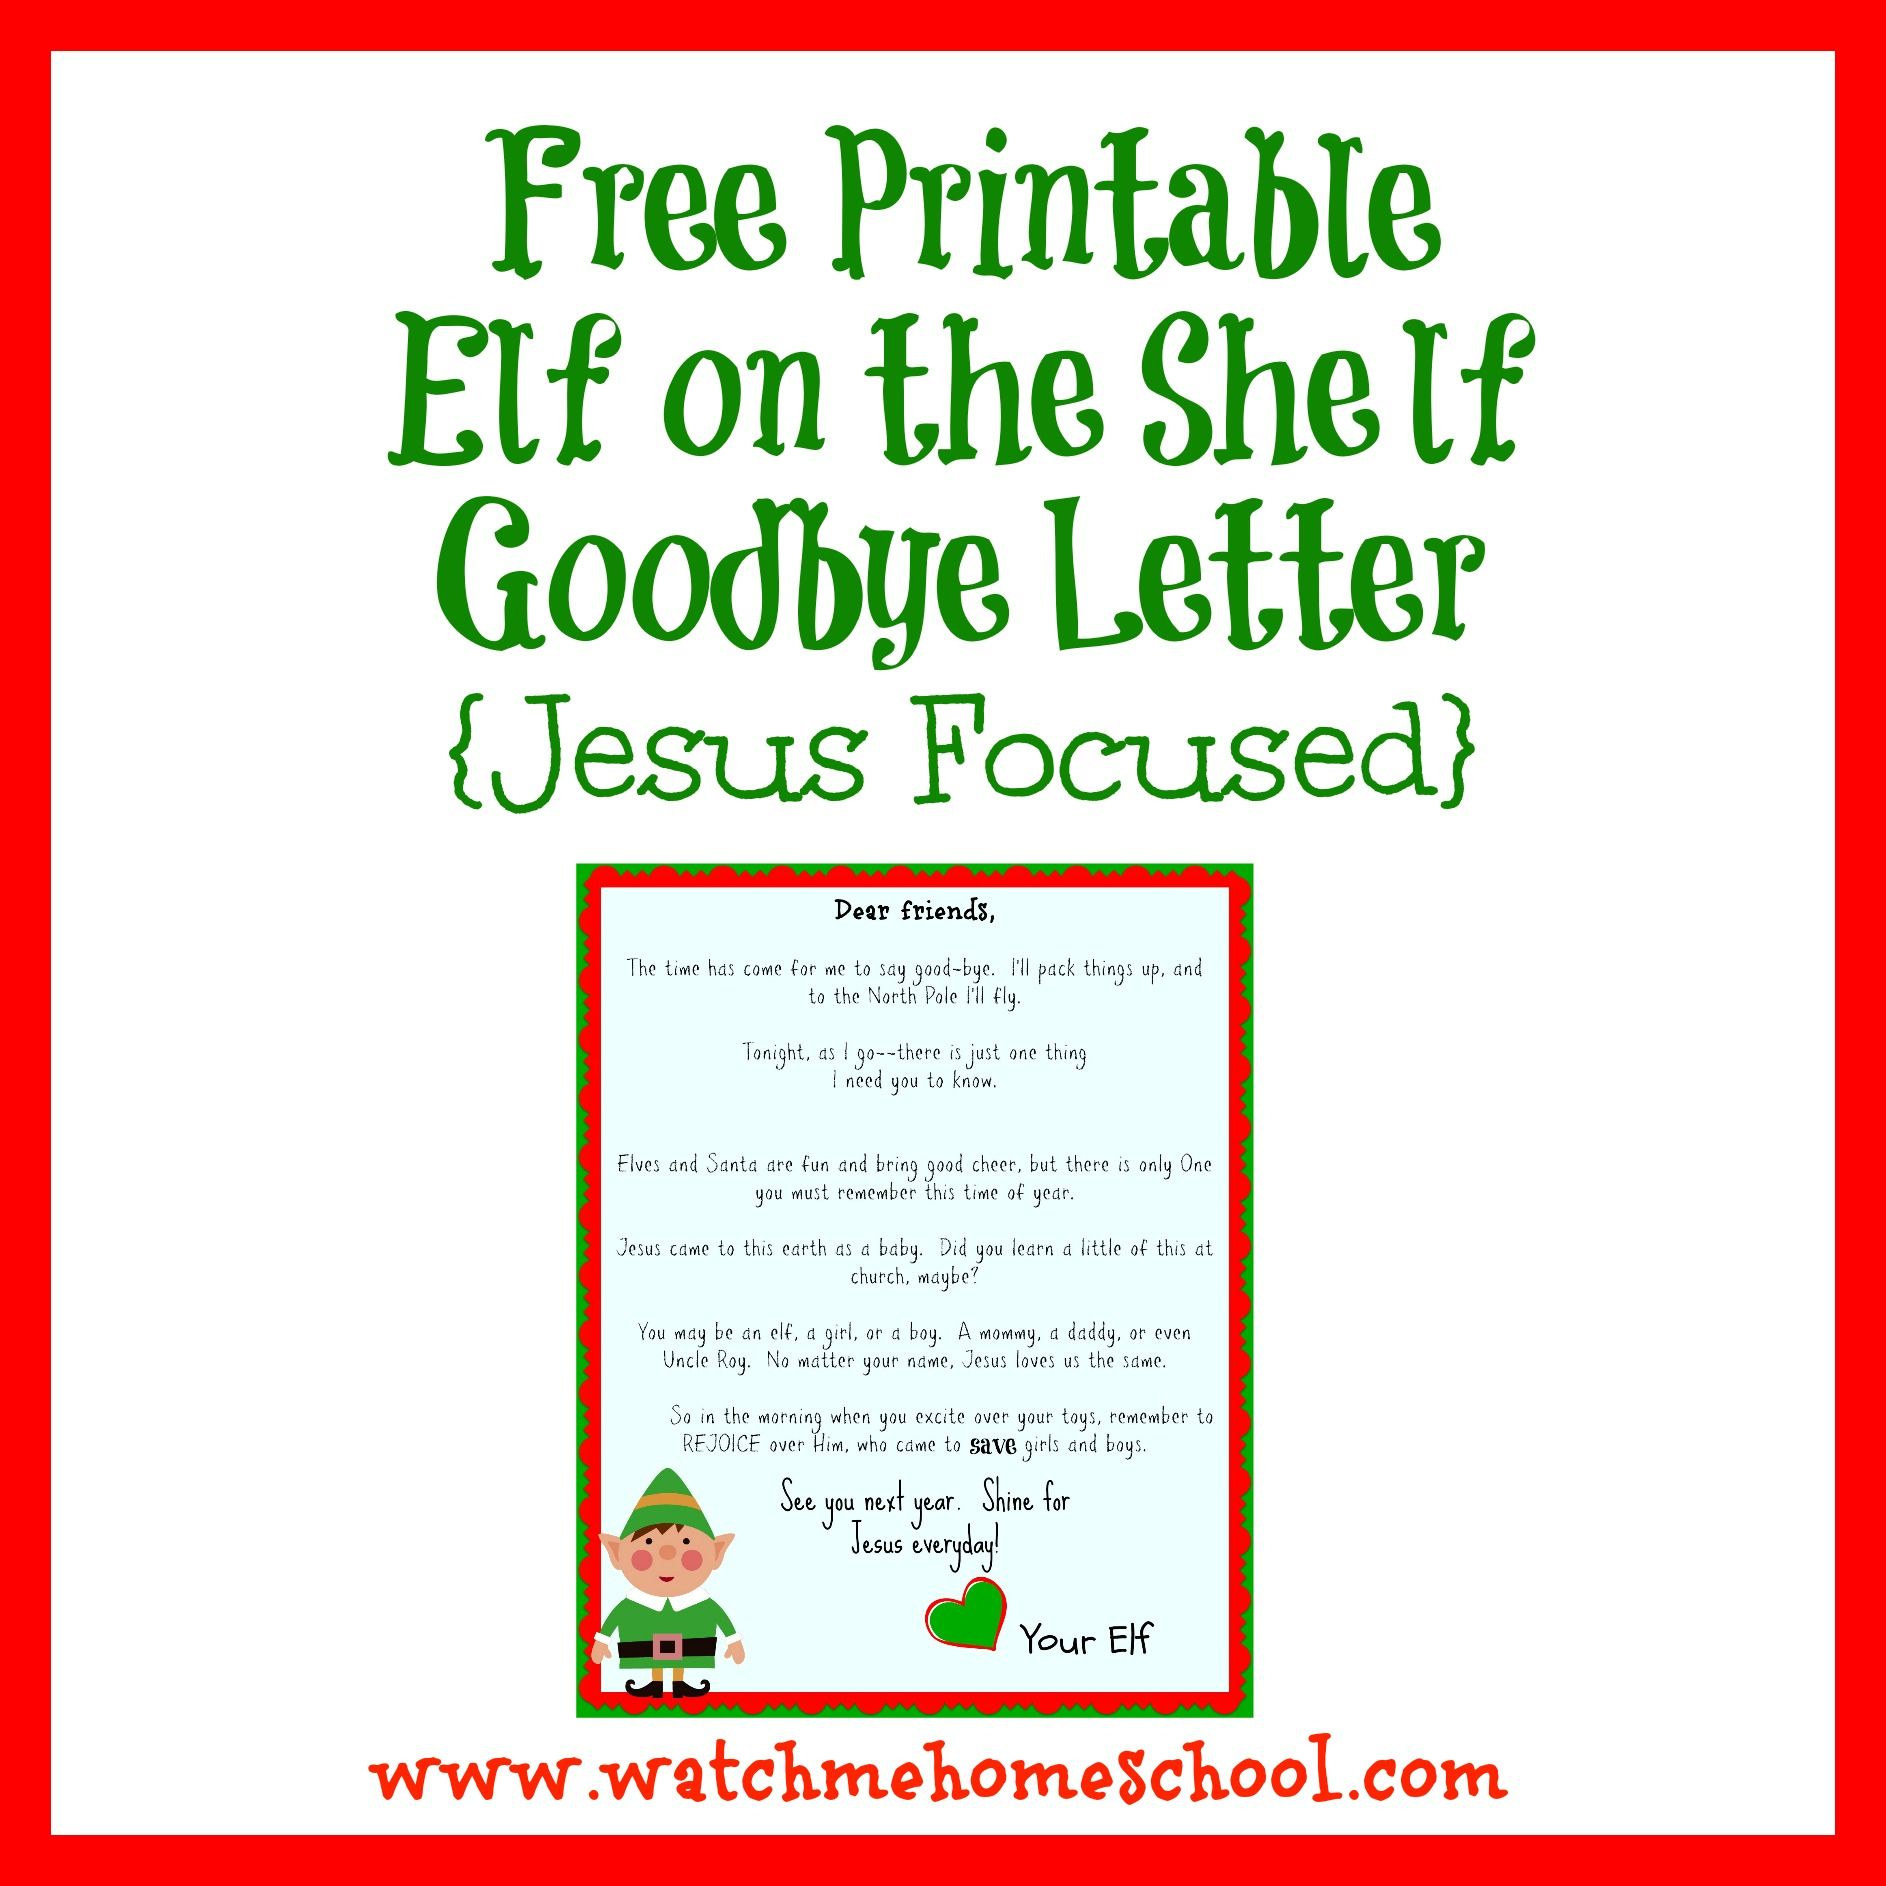 elf on the shelf letters printable free printable on the shelf goodbye letter jesus 10180